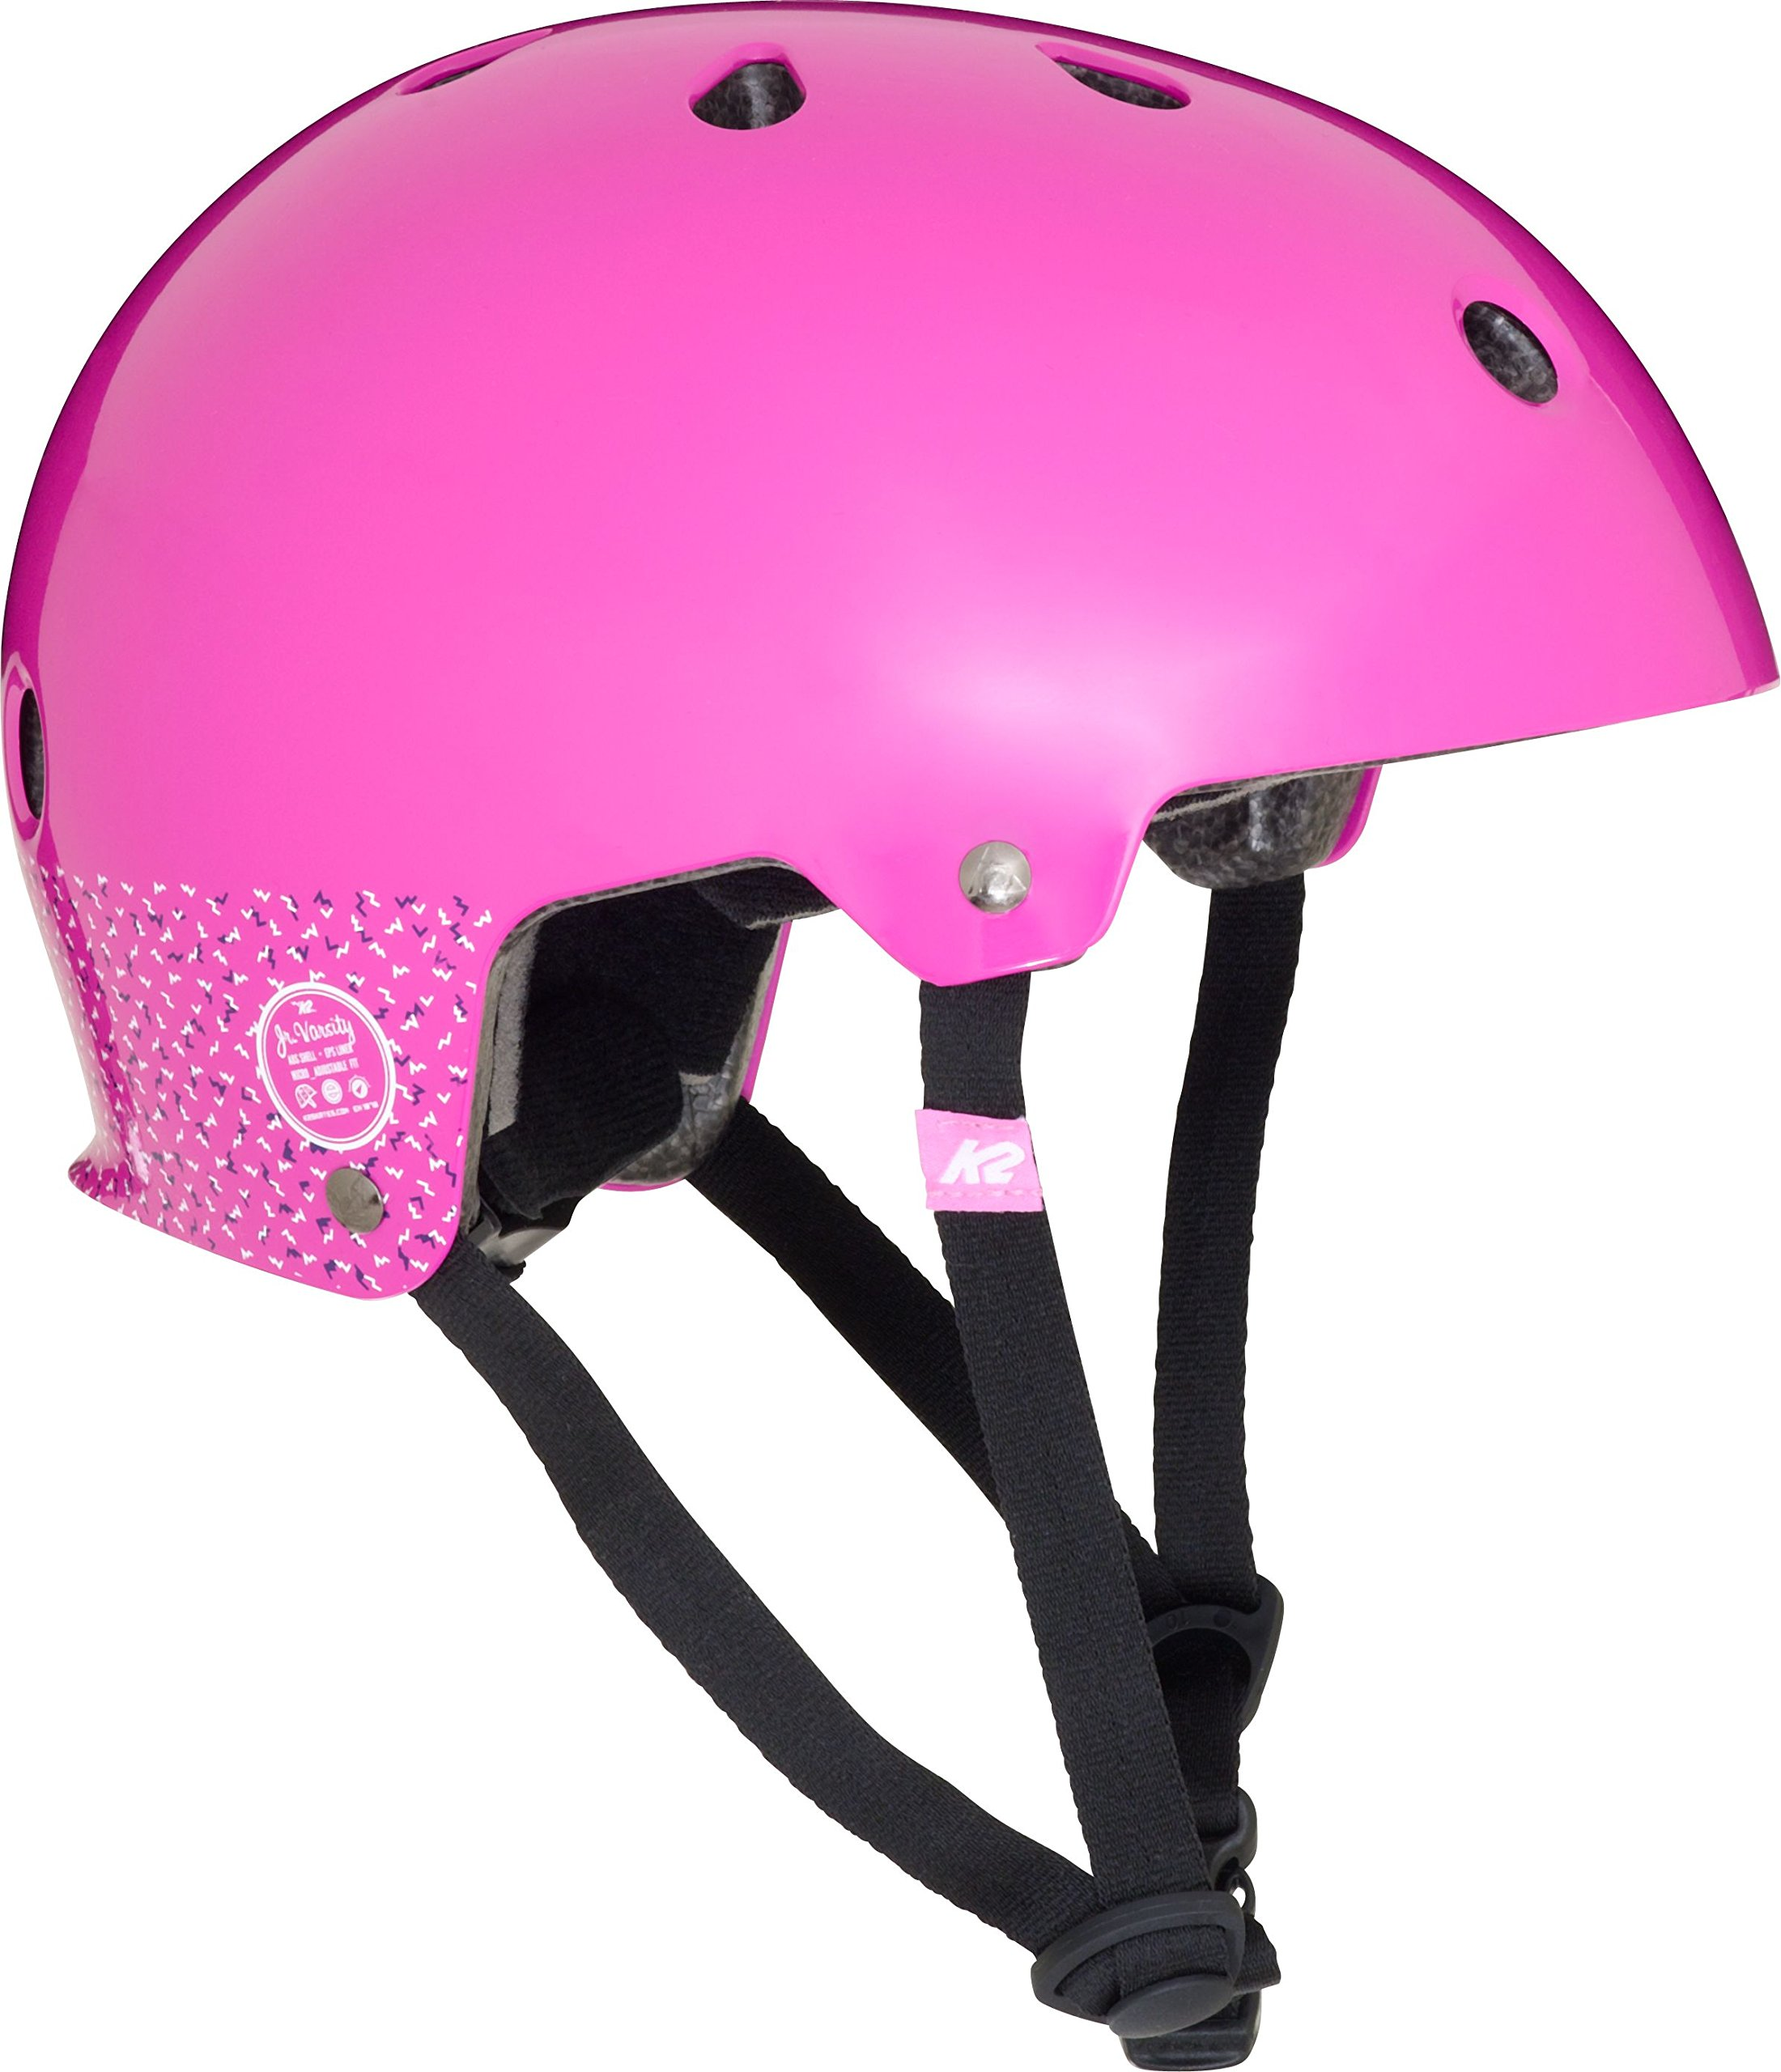 K2 Skate Jr Varsity Girls Helmet, Small, Purple by K2 Skate